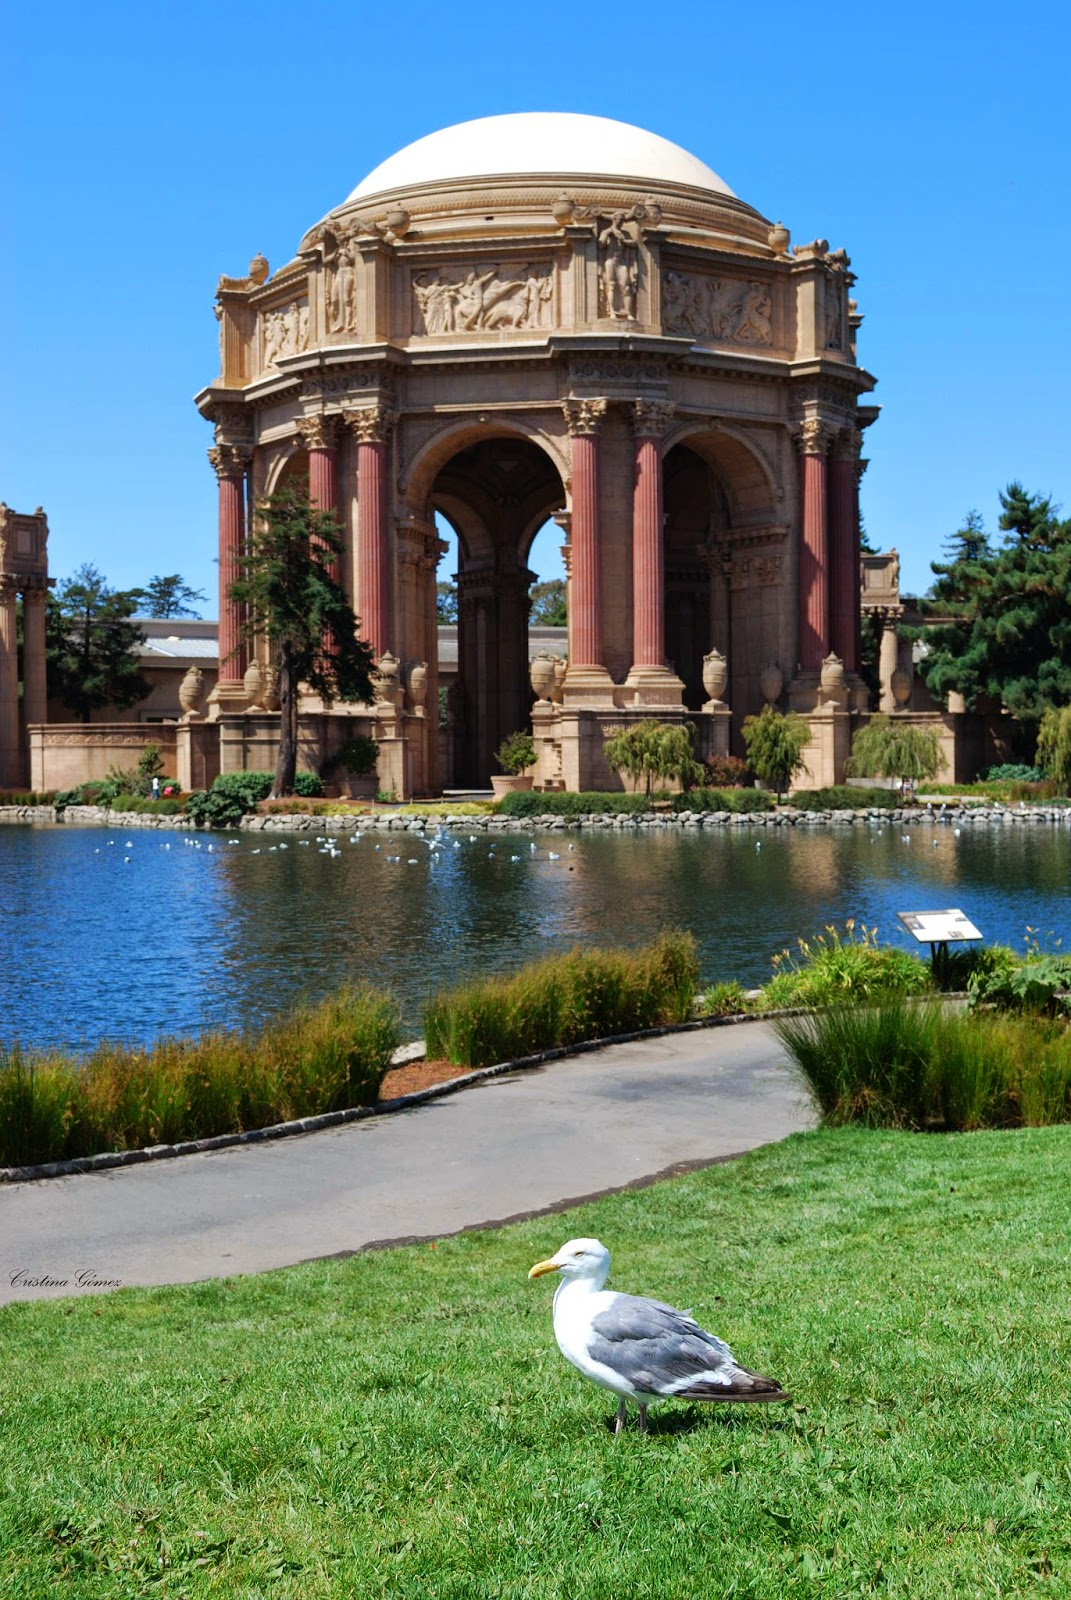 Best of San Francisco: Palace of Fine Arts